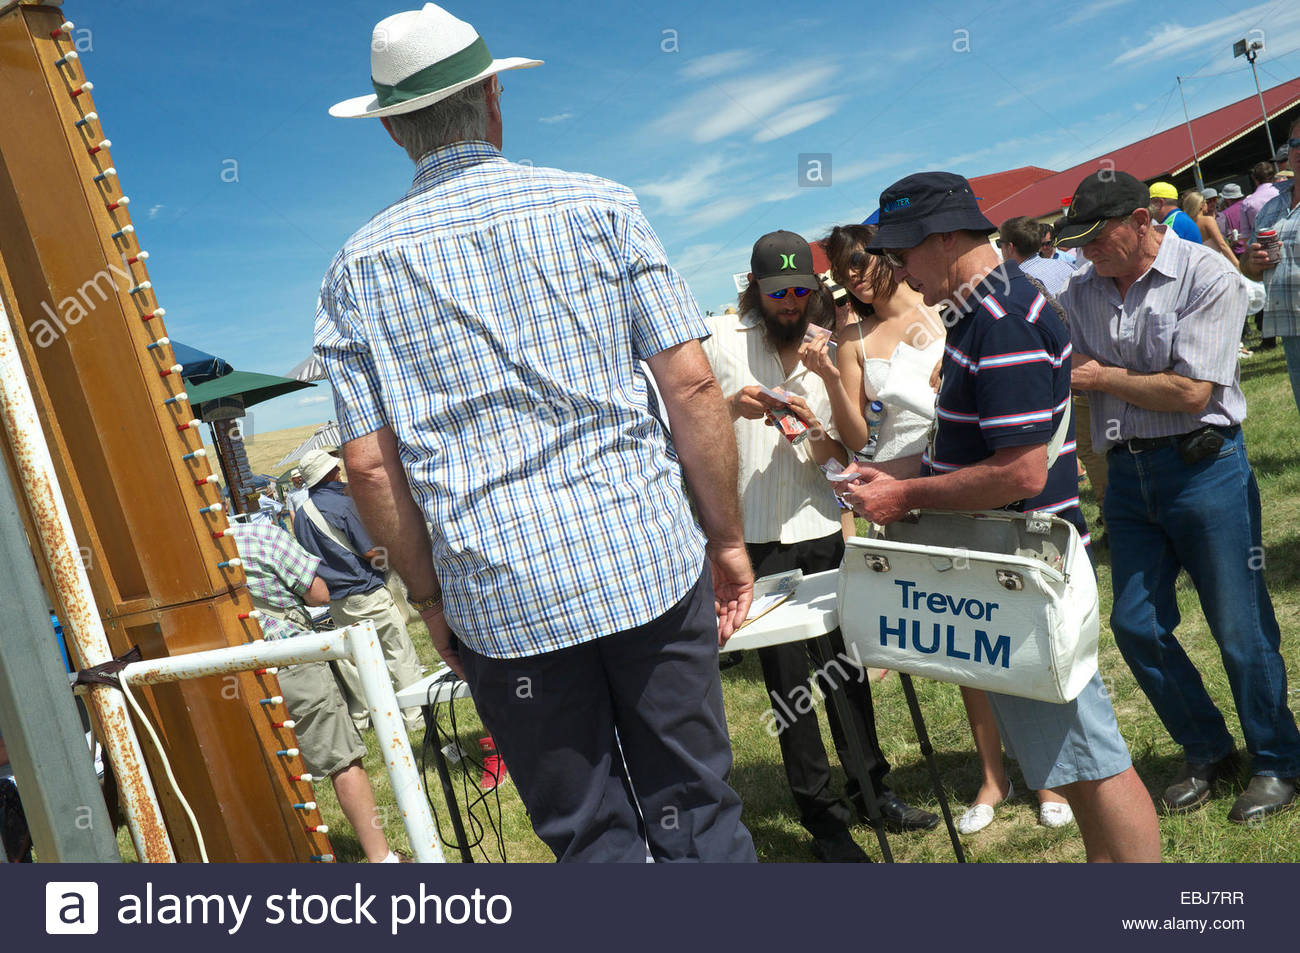 Bookies & punters at the Adaminaby Races (horse racing), in the Snowy Mountains, NSW, Australia. - Stock Image